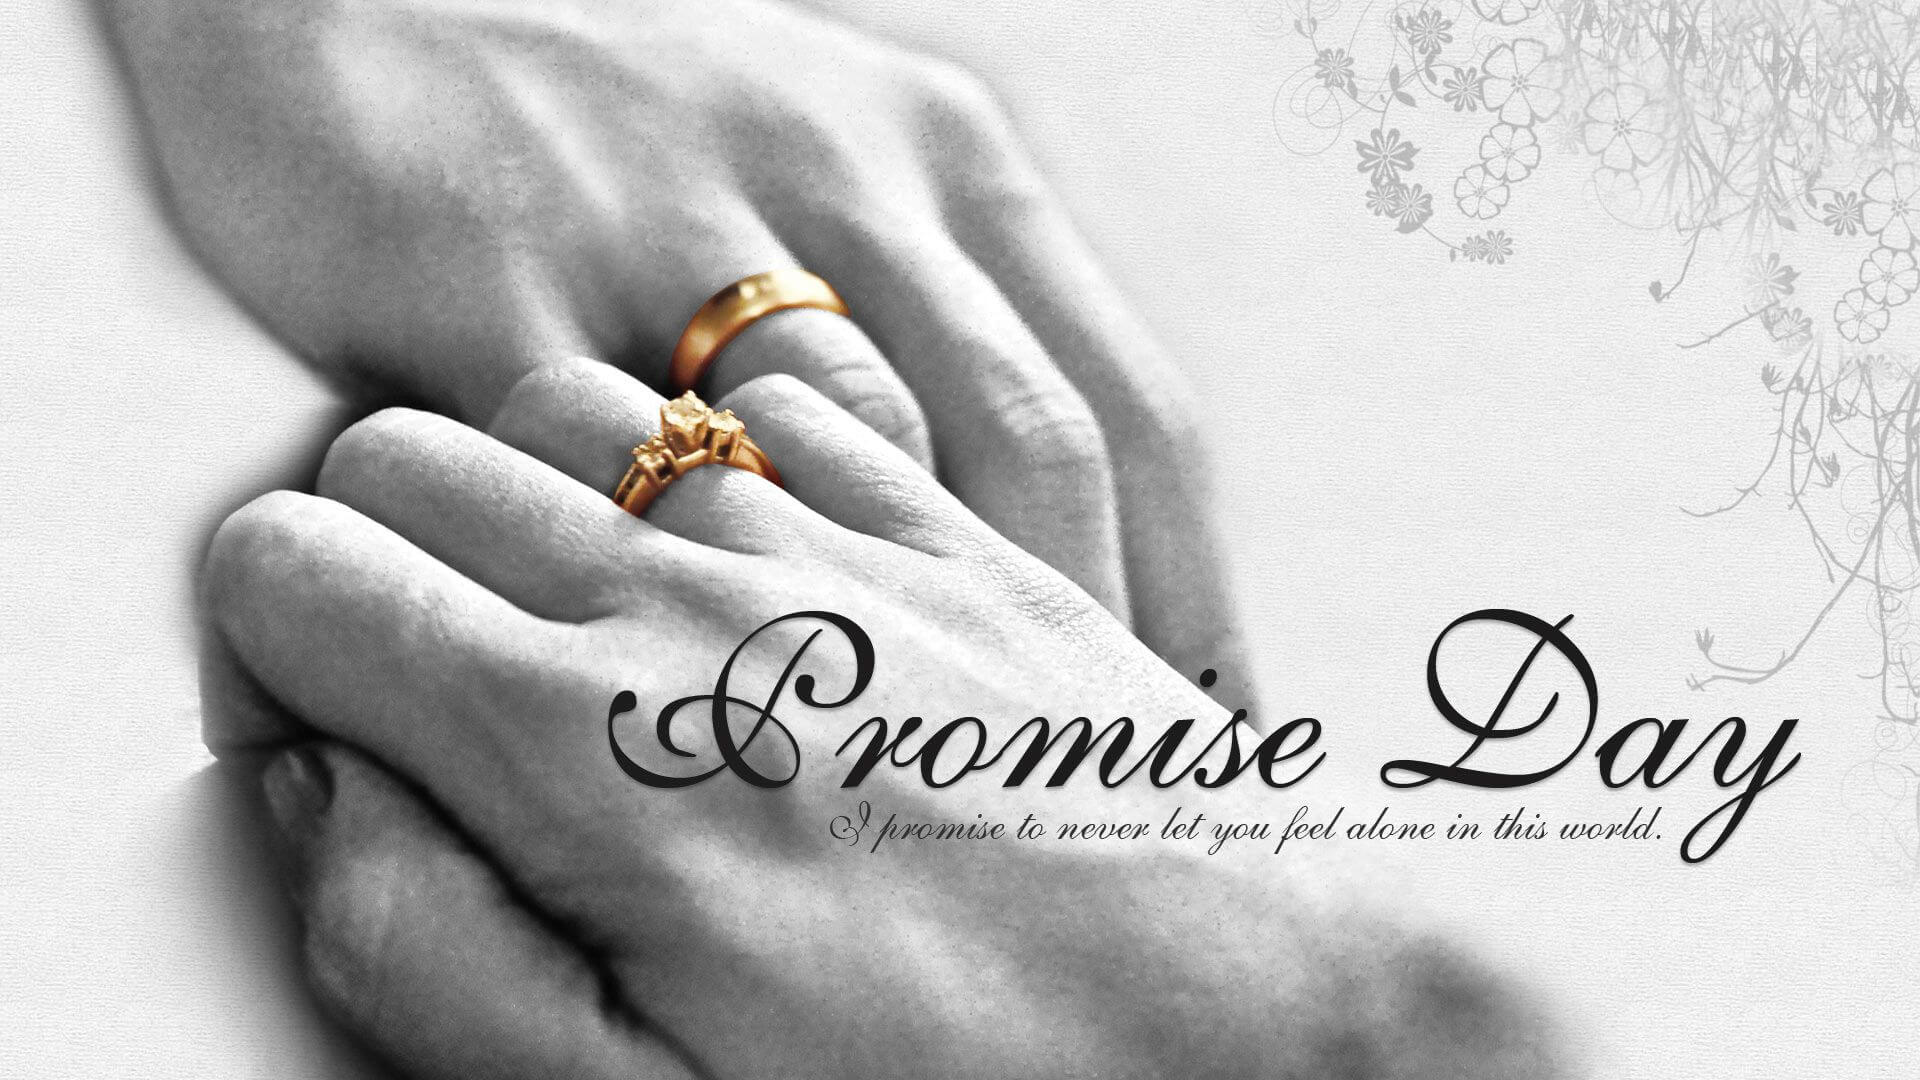 happy promise day wishes love valentine wedding rings quotes hd wallpaper